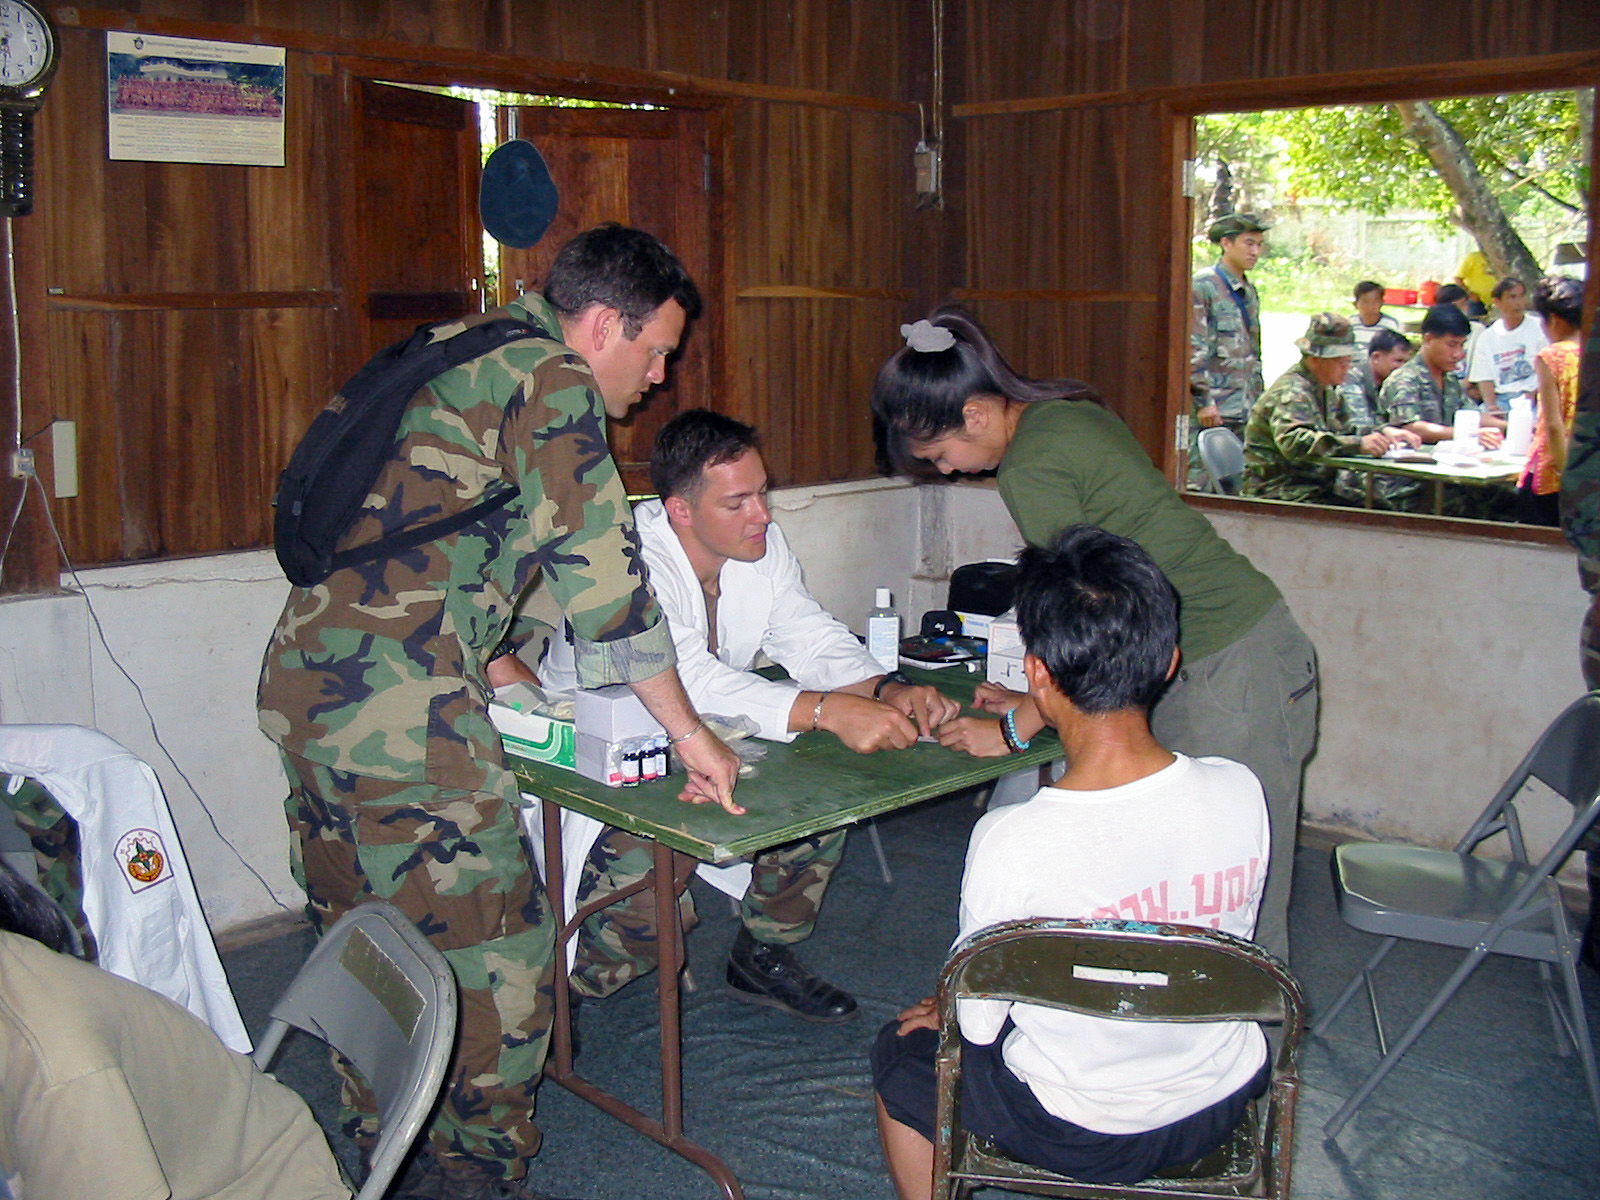 US Army (USA) Medical Doctors assigned to 2nd Battalion, 1ST Special Forces Group (SFG) Airborne, prepare to examine a local Thai man during the Medical Community Assistance Program (MEDCAP) at Ban Dong, Thailand, during Exercise COBRA GOLD 2003